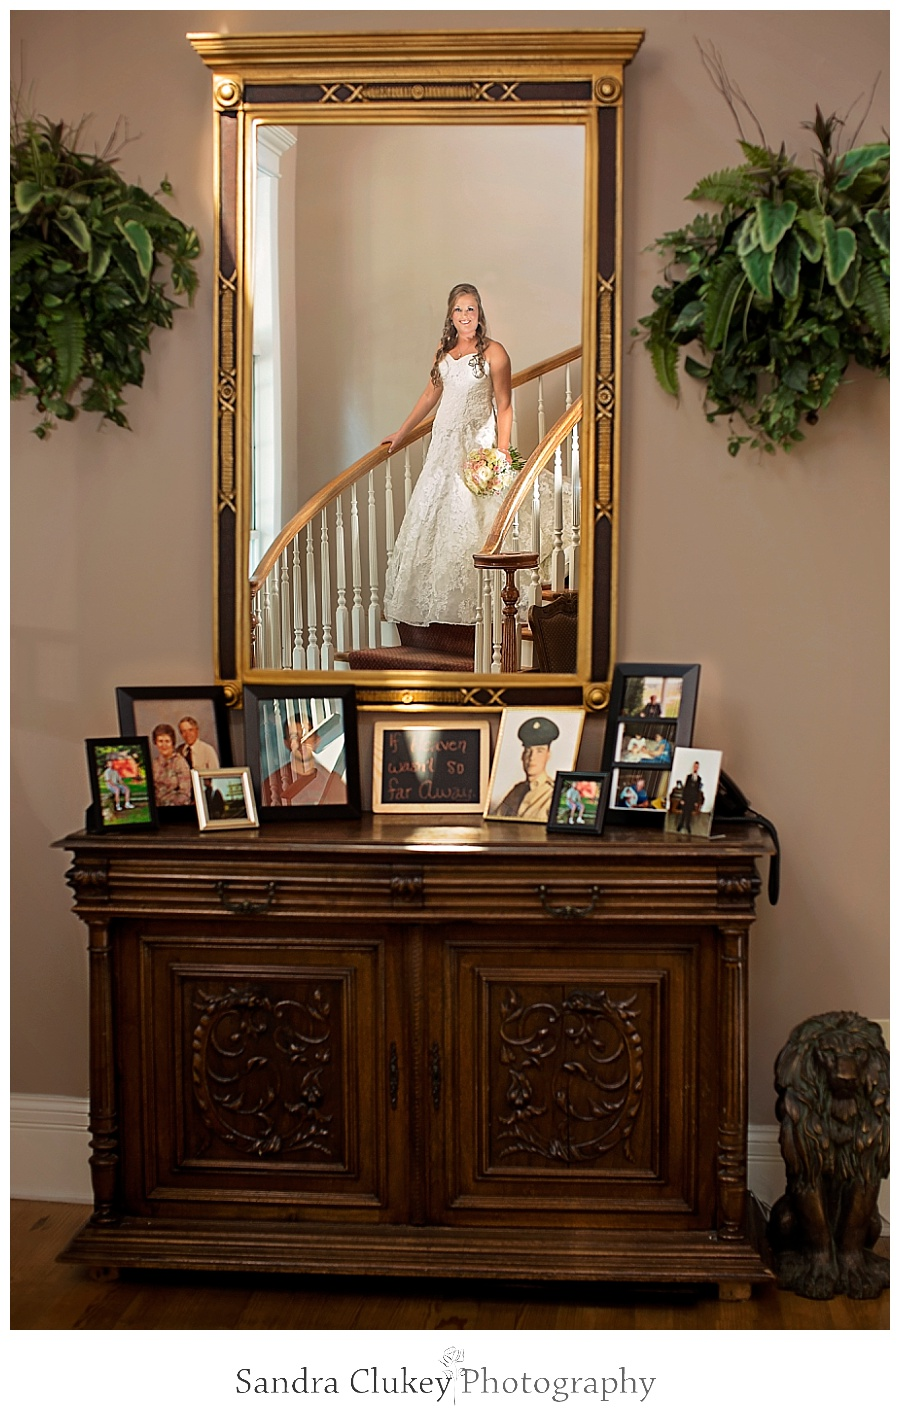 Bride in Mirror with Memorial Table at Whitestone Inn Wedding